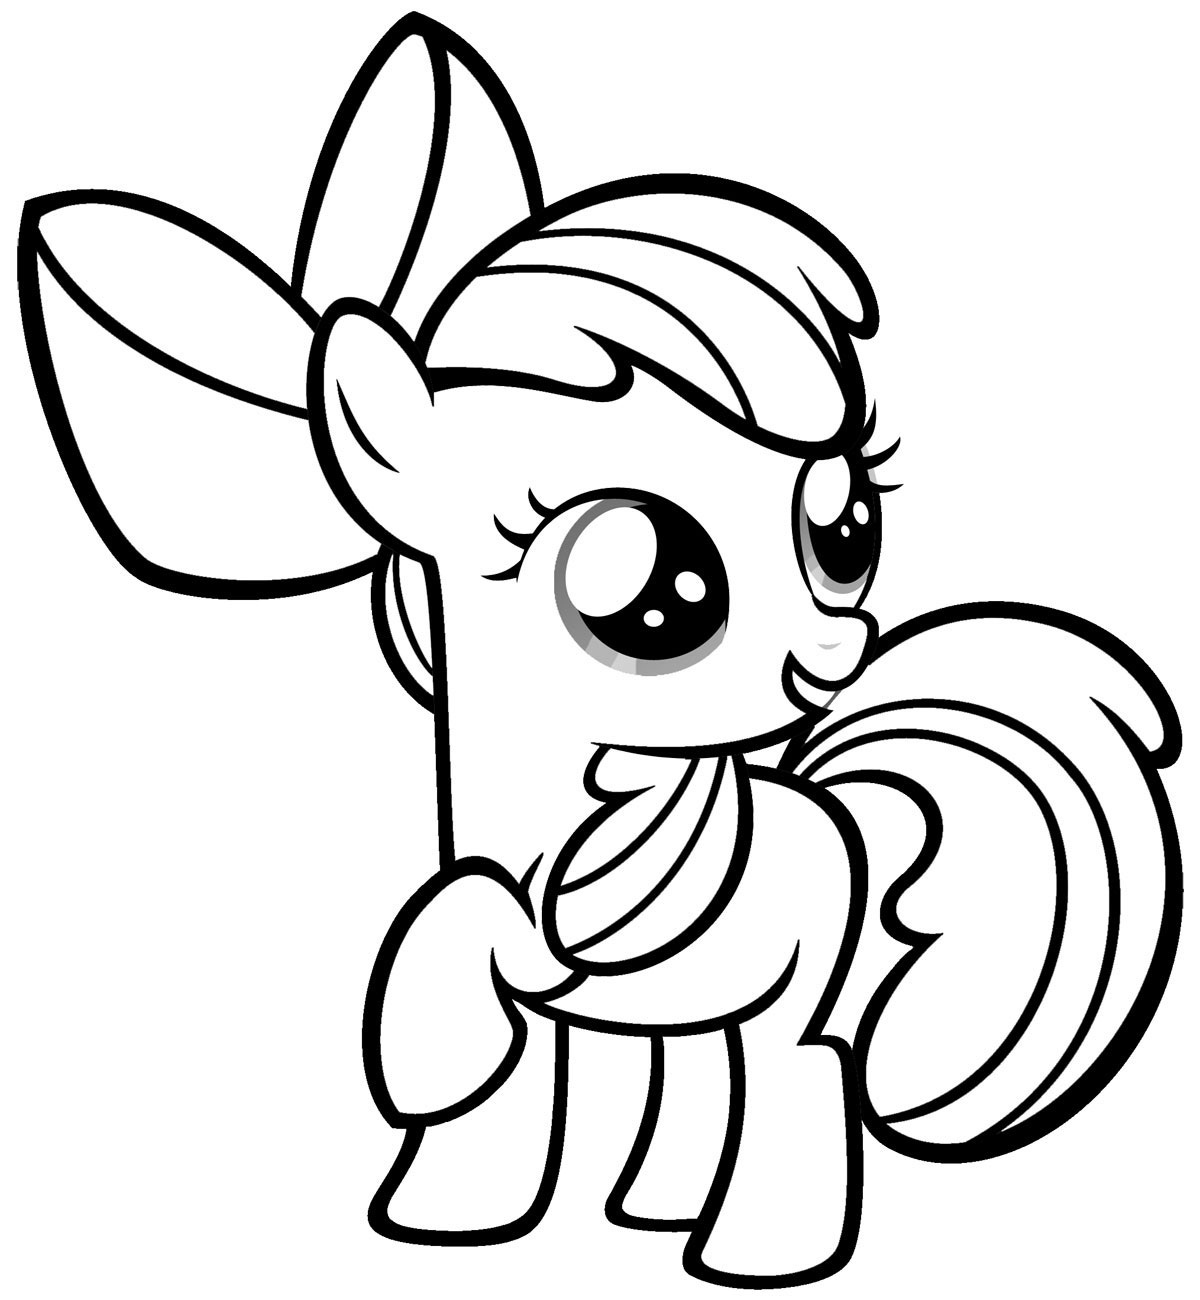 graphic relating to My Little Pony Printable Coloring Pages titled No cost Printable My Small Pony Coloring Webpages For Small children